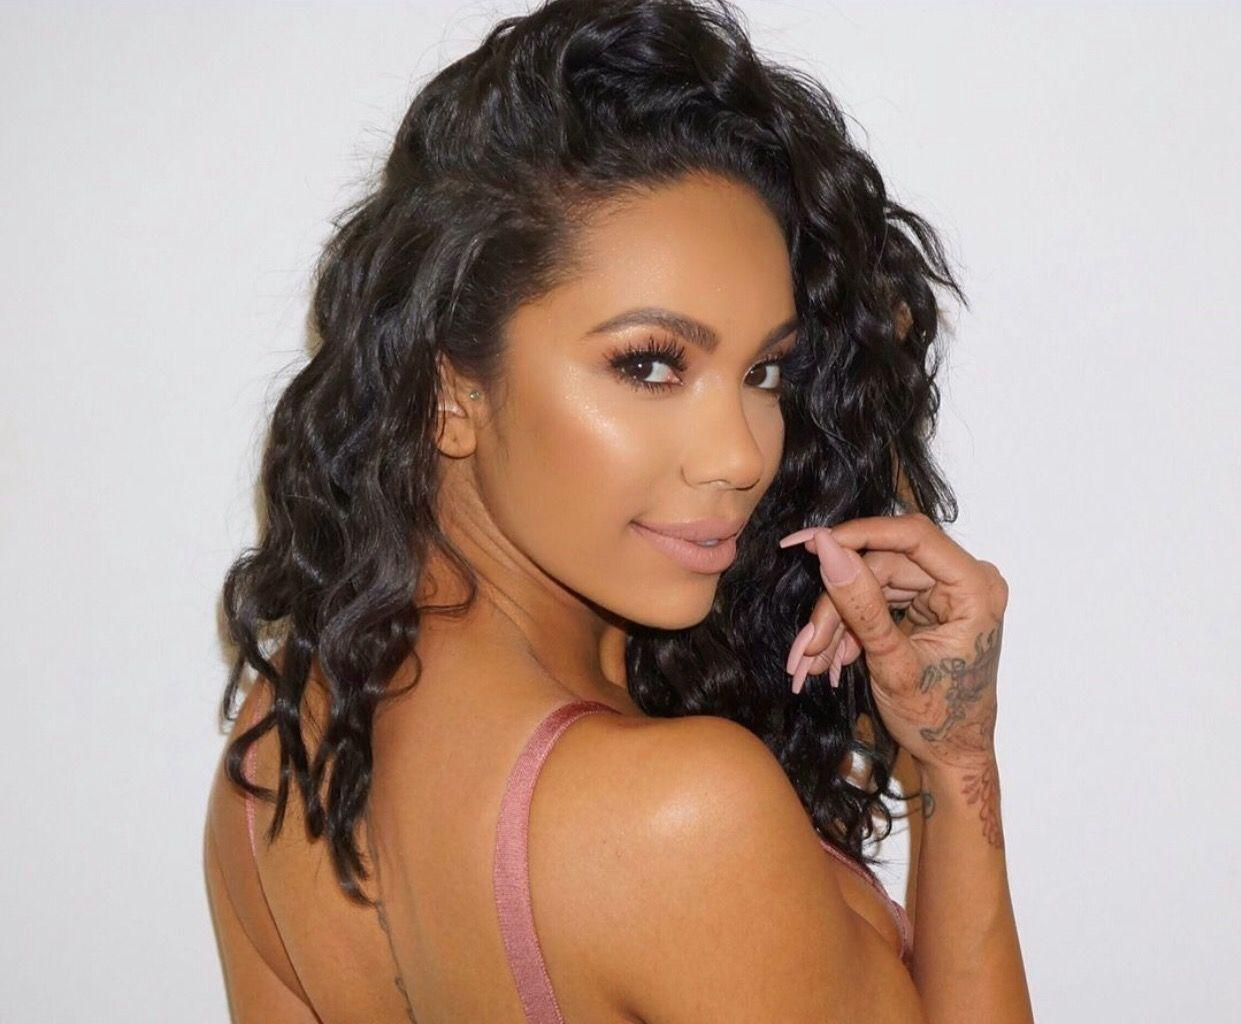 Erica Mena Shows Off Her Generous Curves In This Cute Fashion Nova Outfit